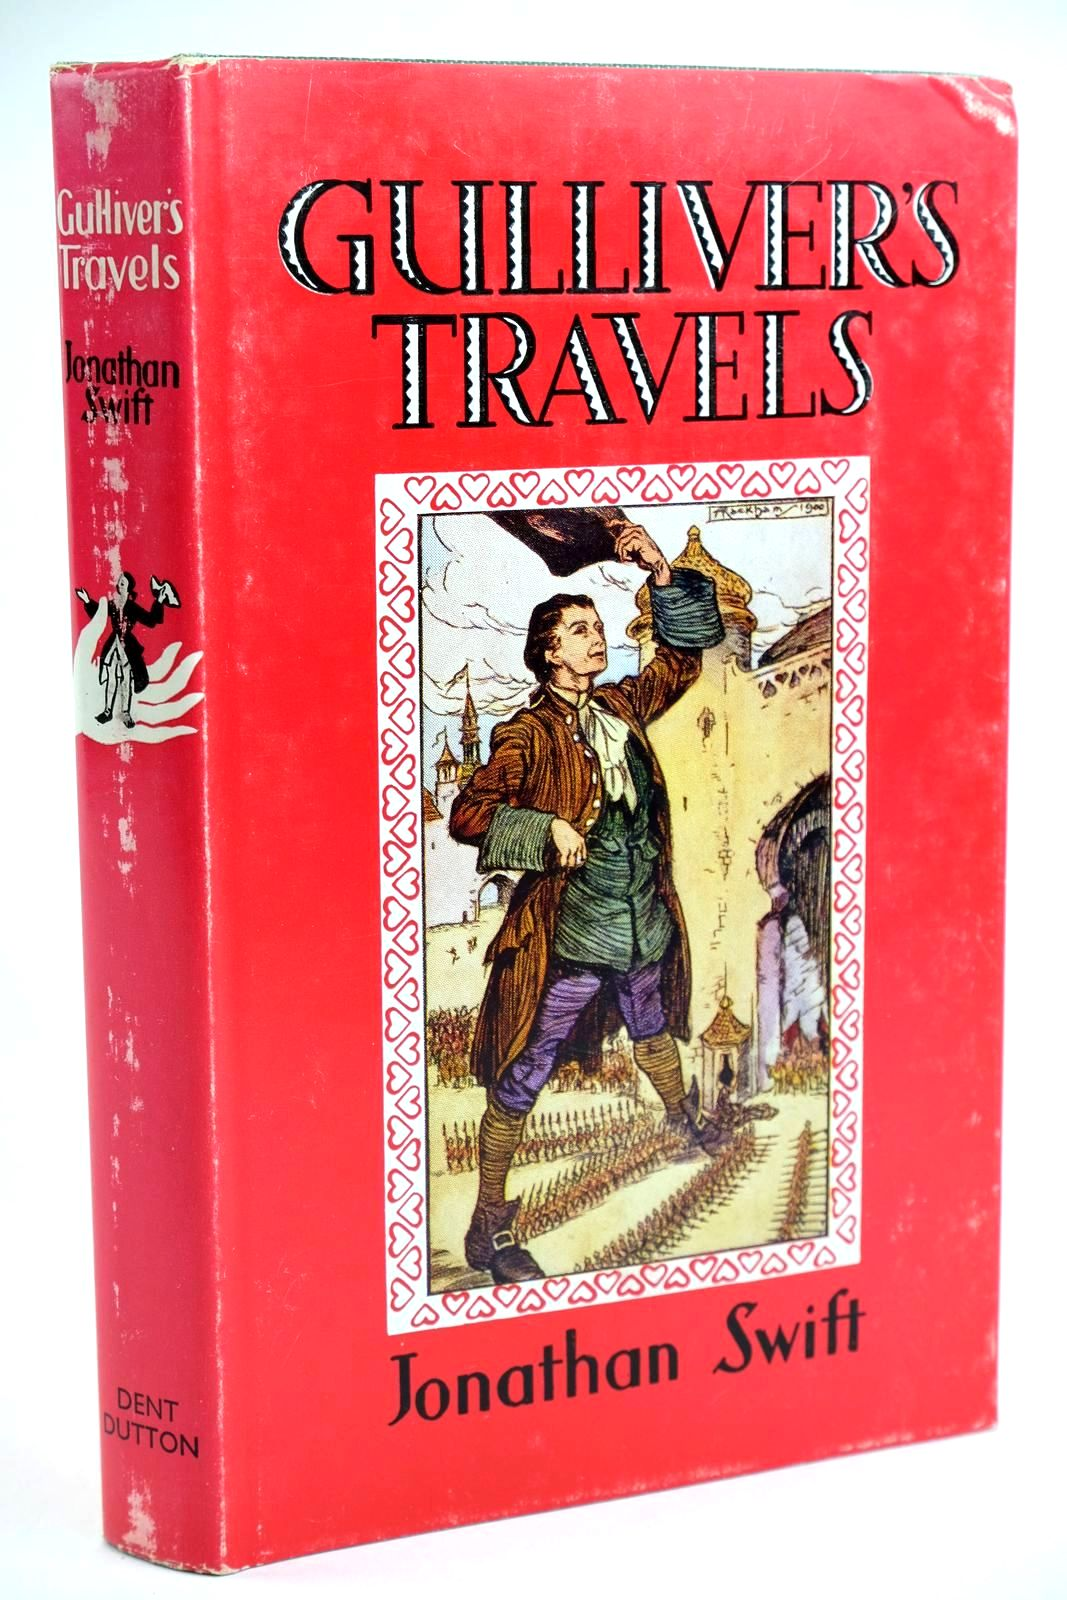 Photo of GULLIVER'S TRAVELS written by Swift, Jonathan illustrated by Rackham, Arthur published by J.M. Dent & Sons Ltd. (STOCK CODE: 1319185)  for sale by Stella & Rose's Books